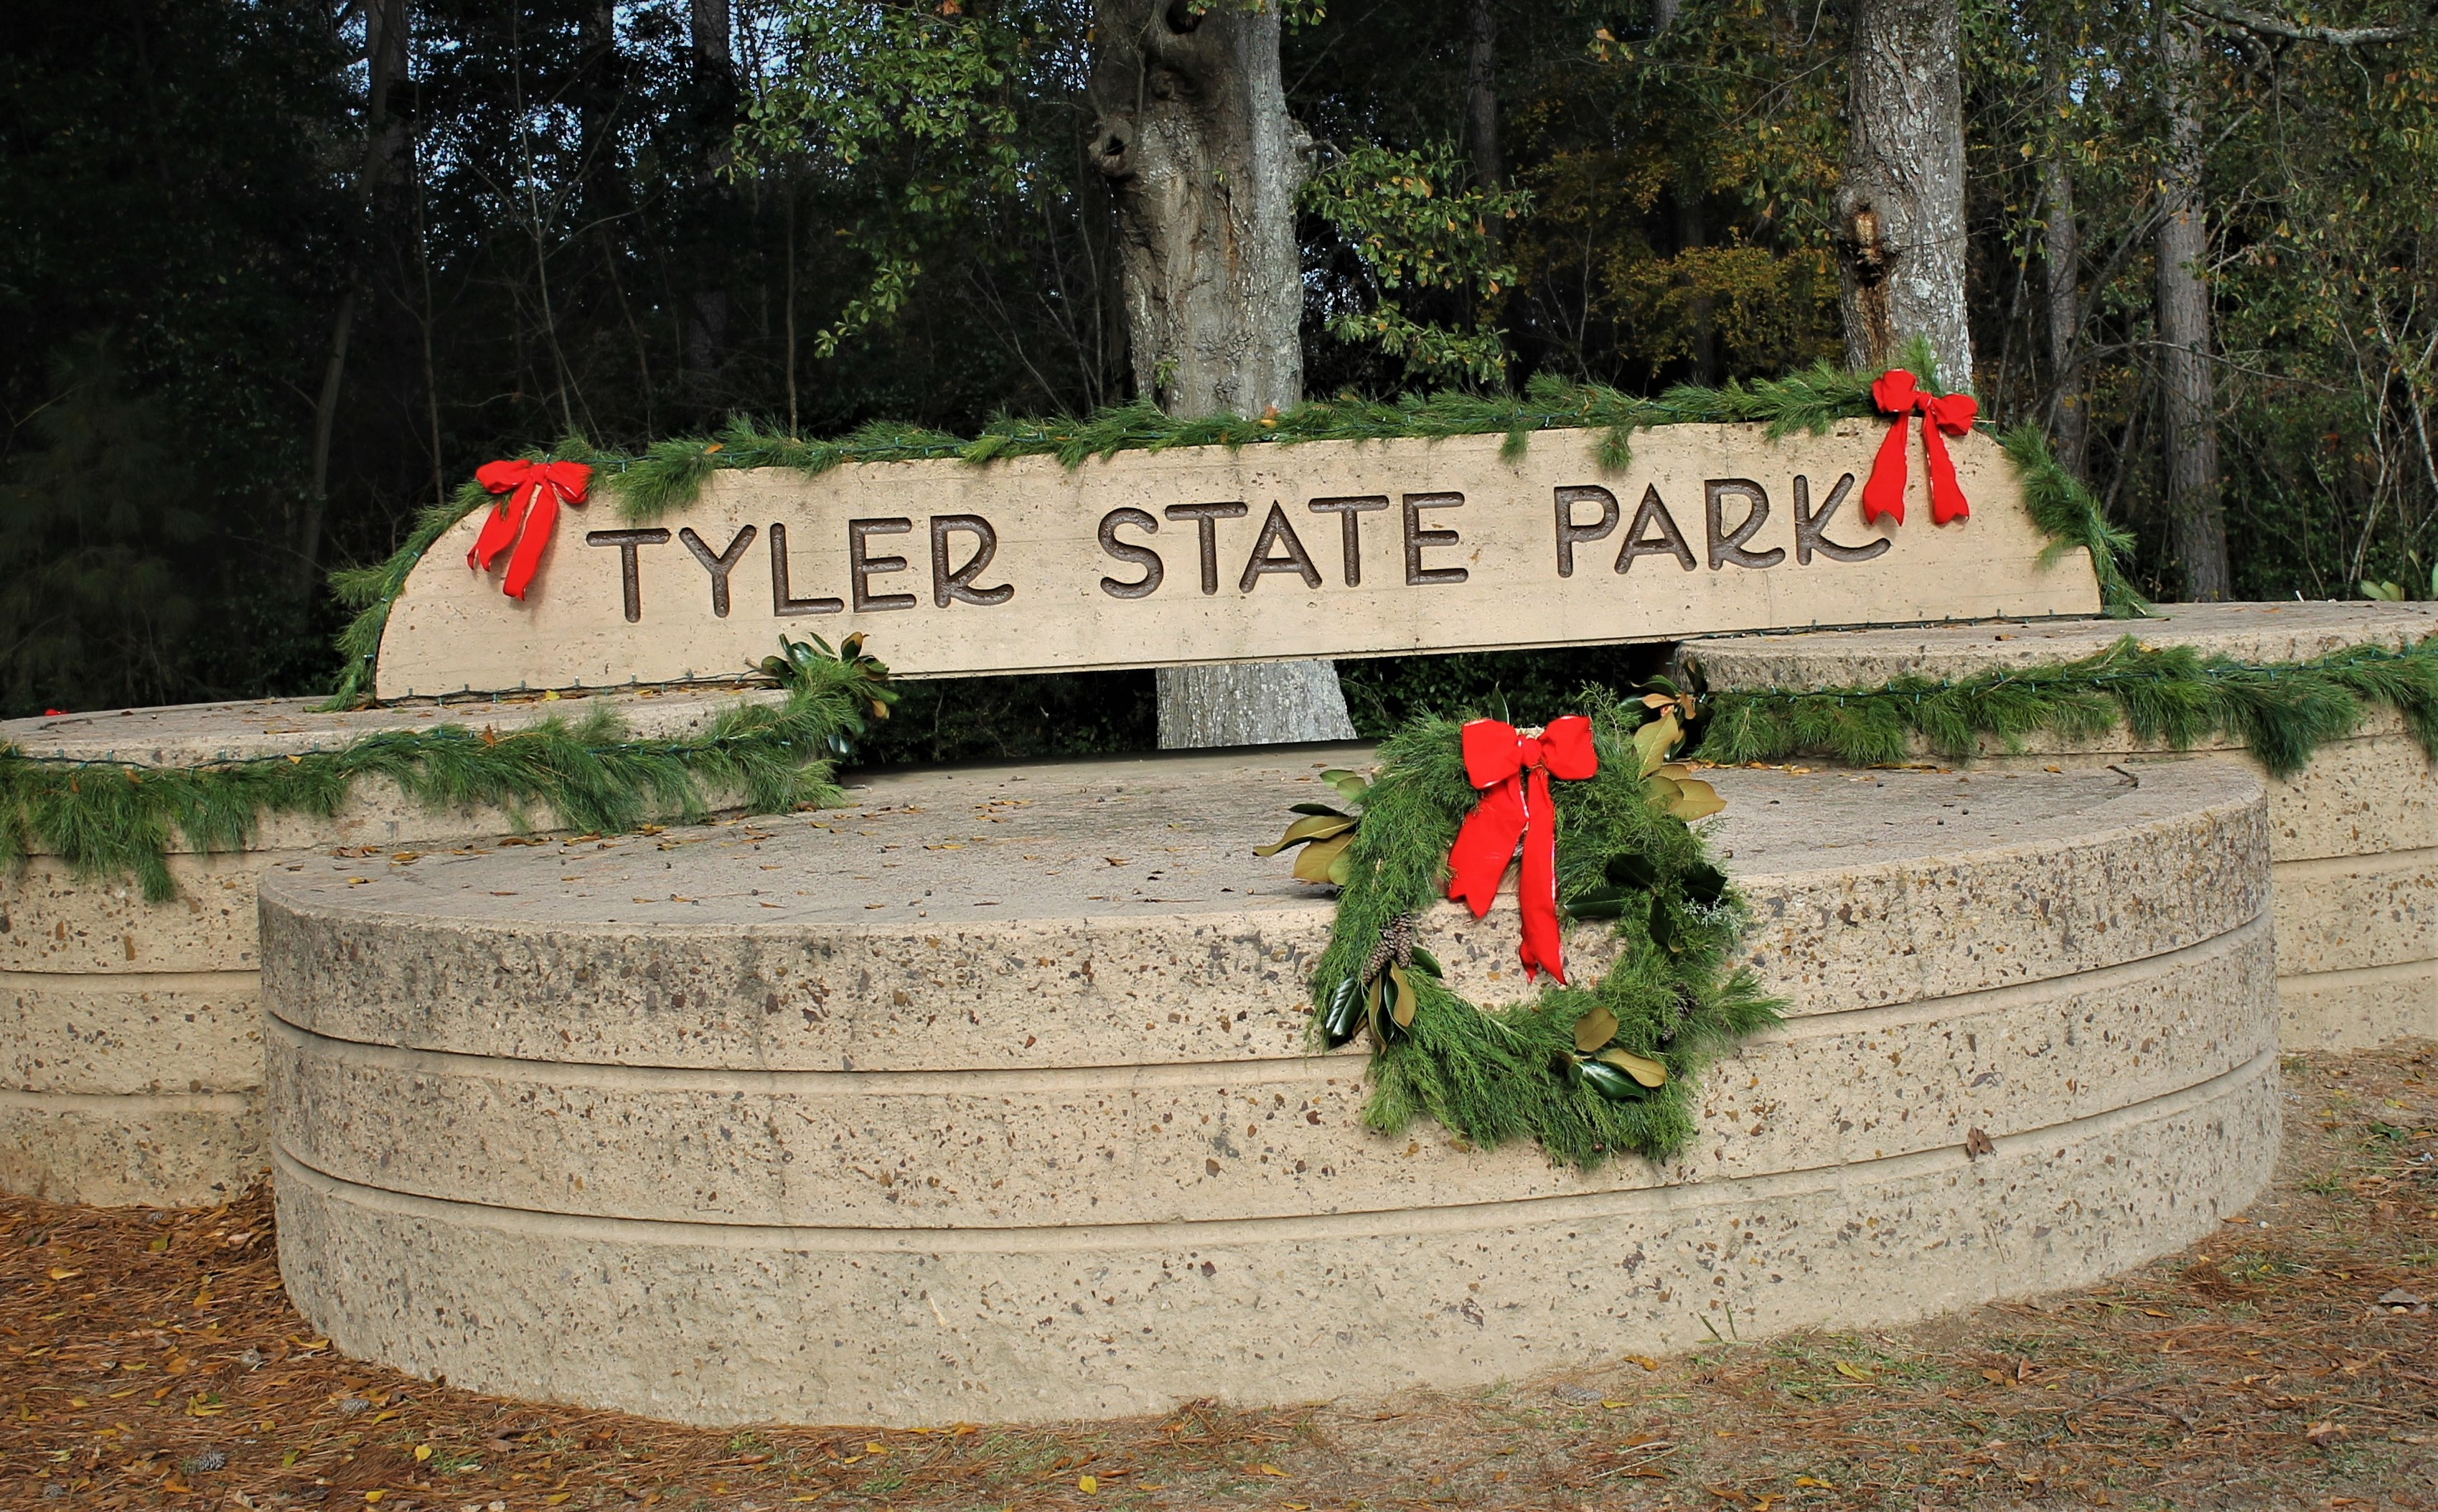 tyler state park, texas